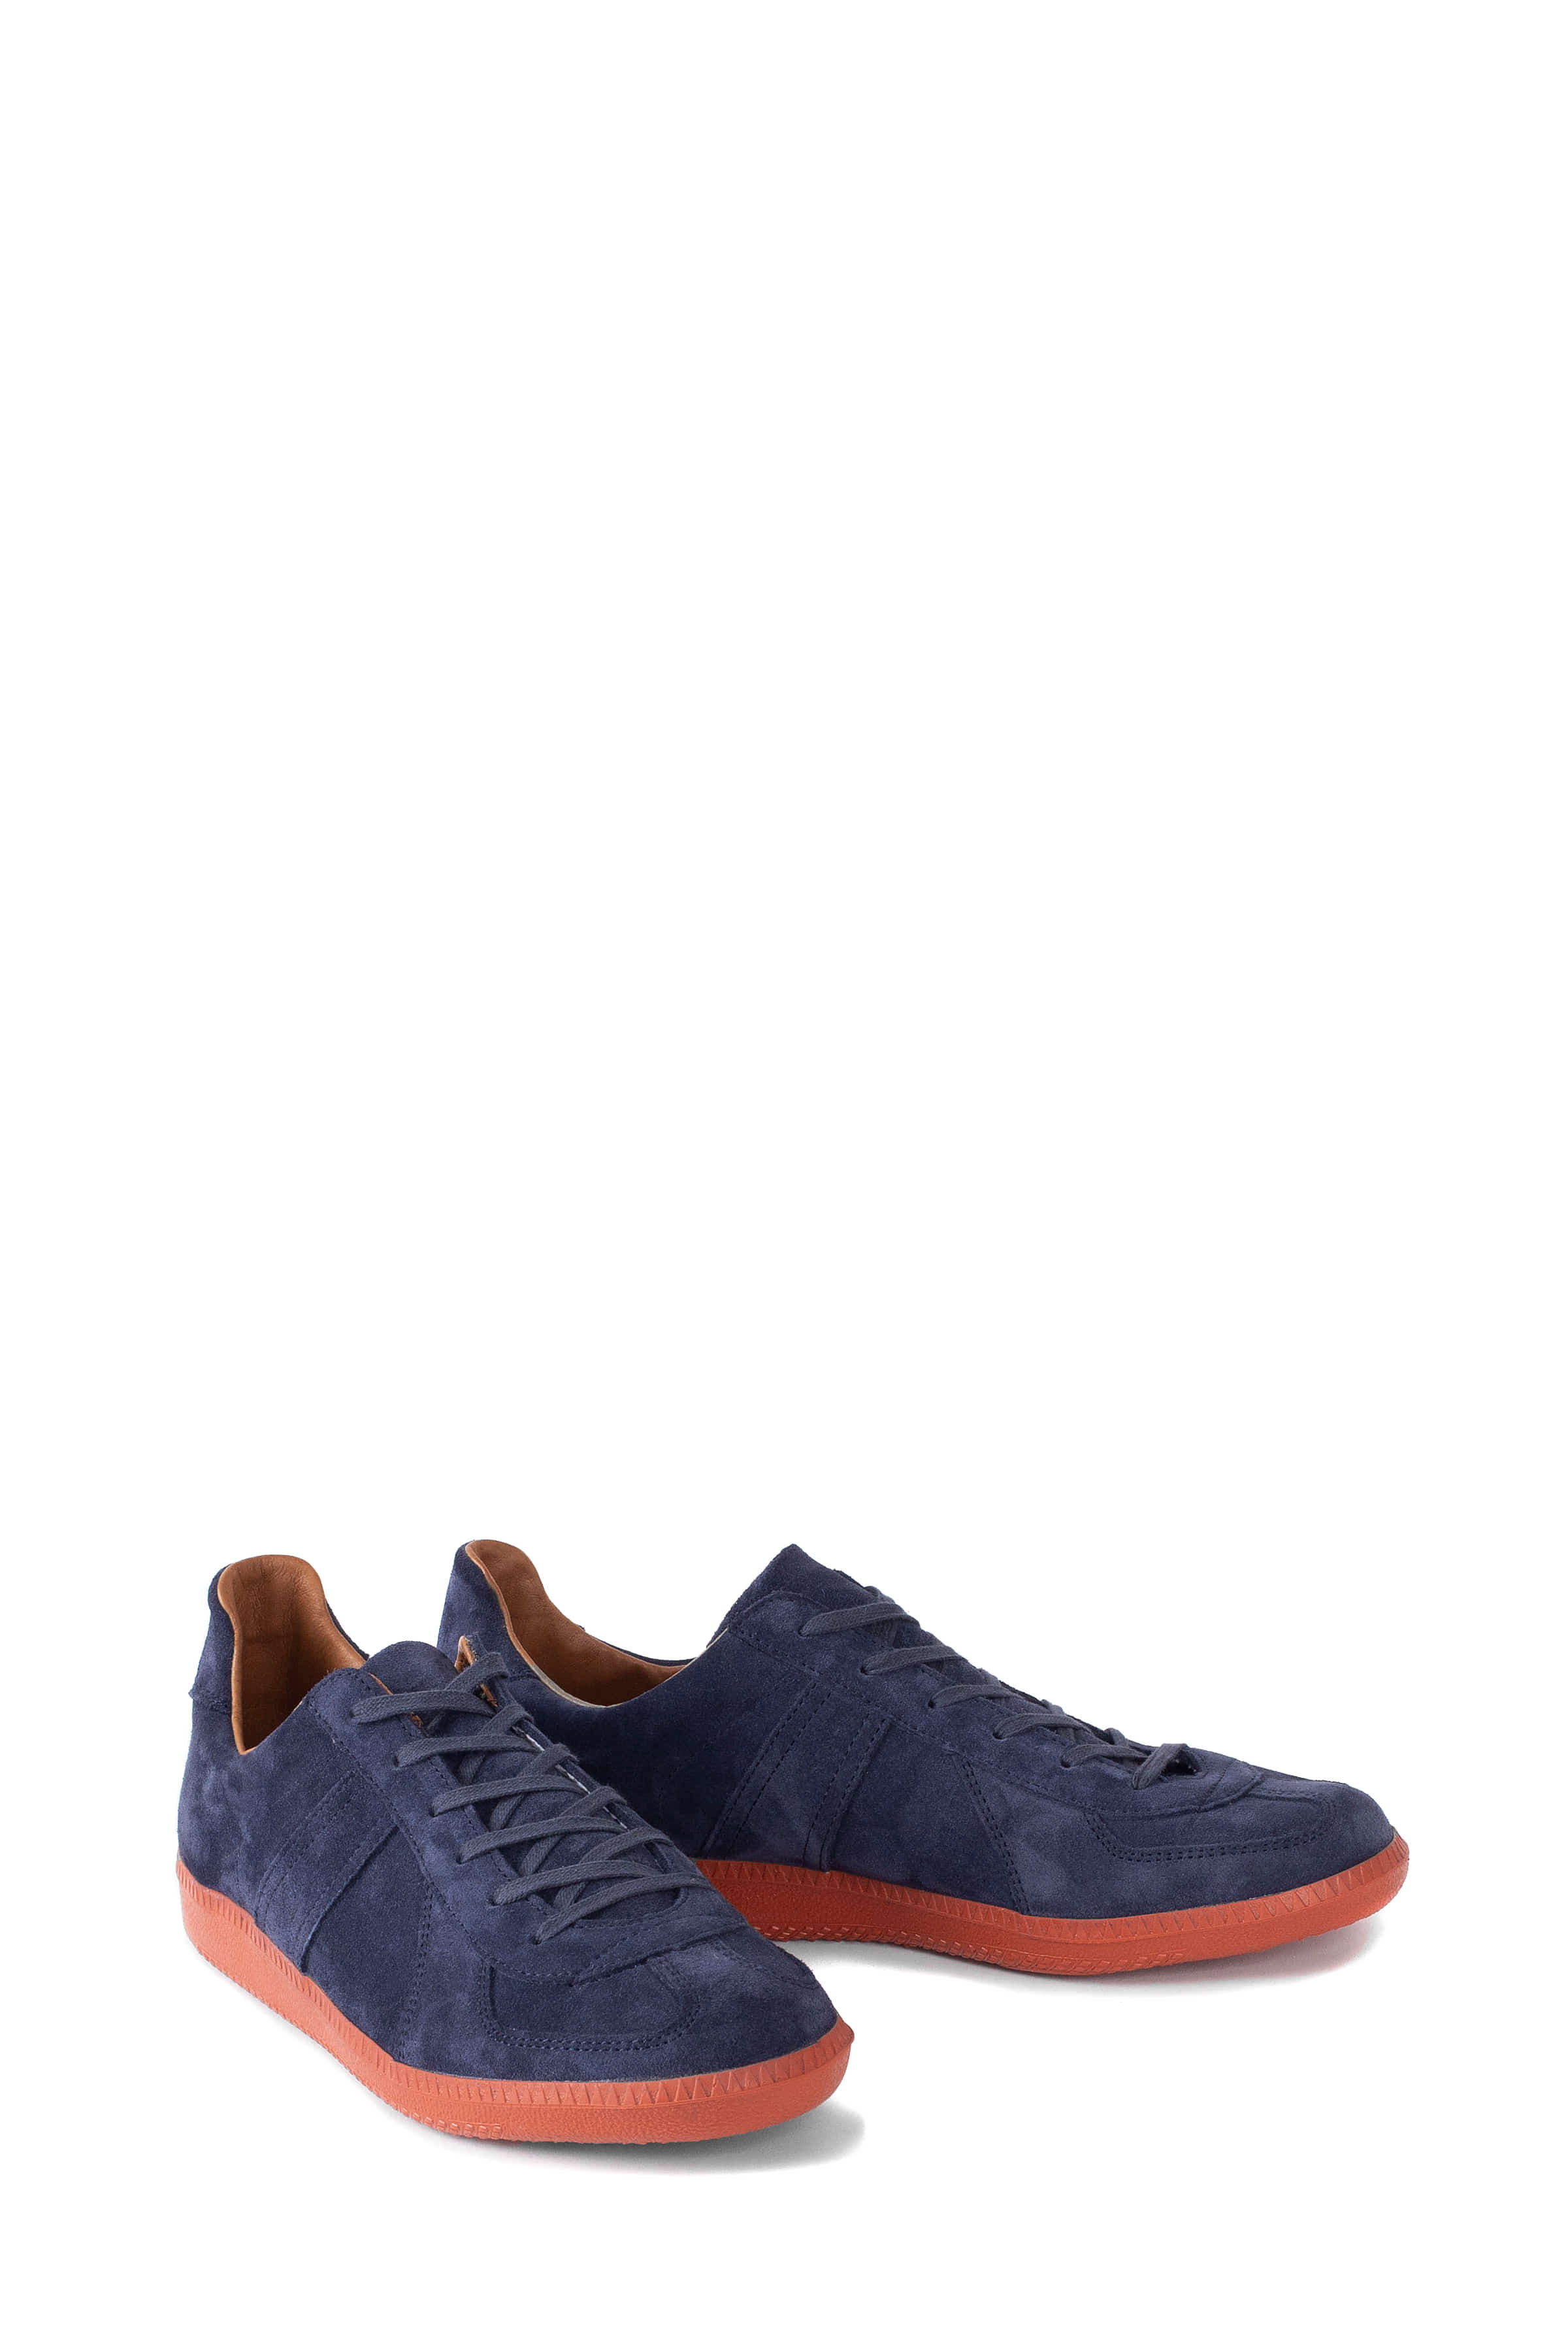 REPRODUCTION OF FOUND : German Military Trainer 1700L (Navy Suede/Brick Sole)